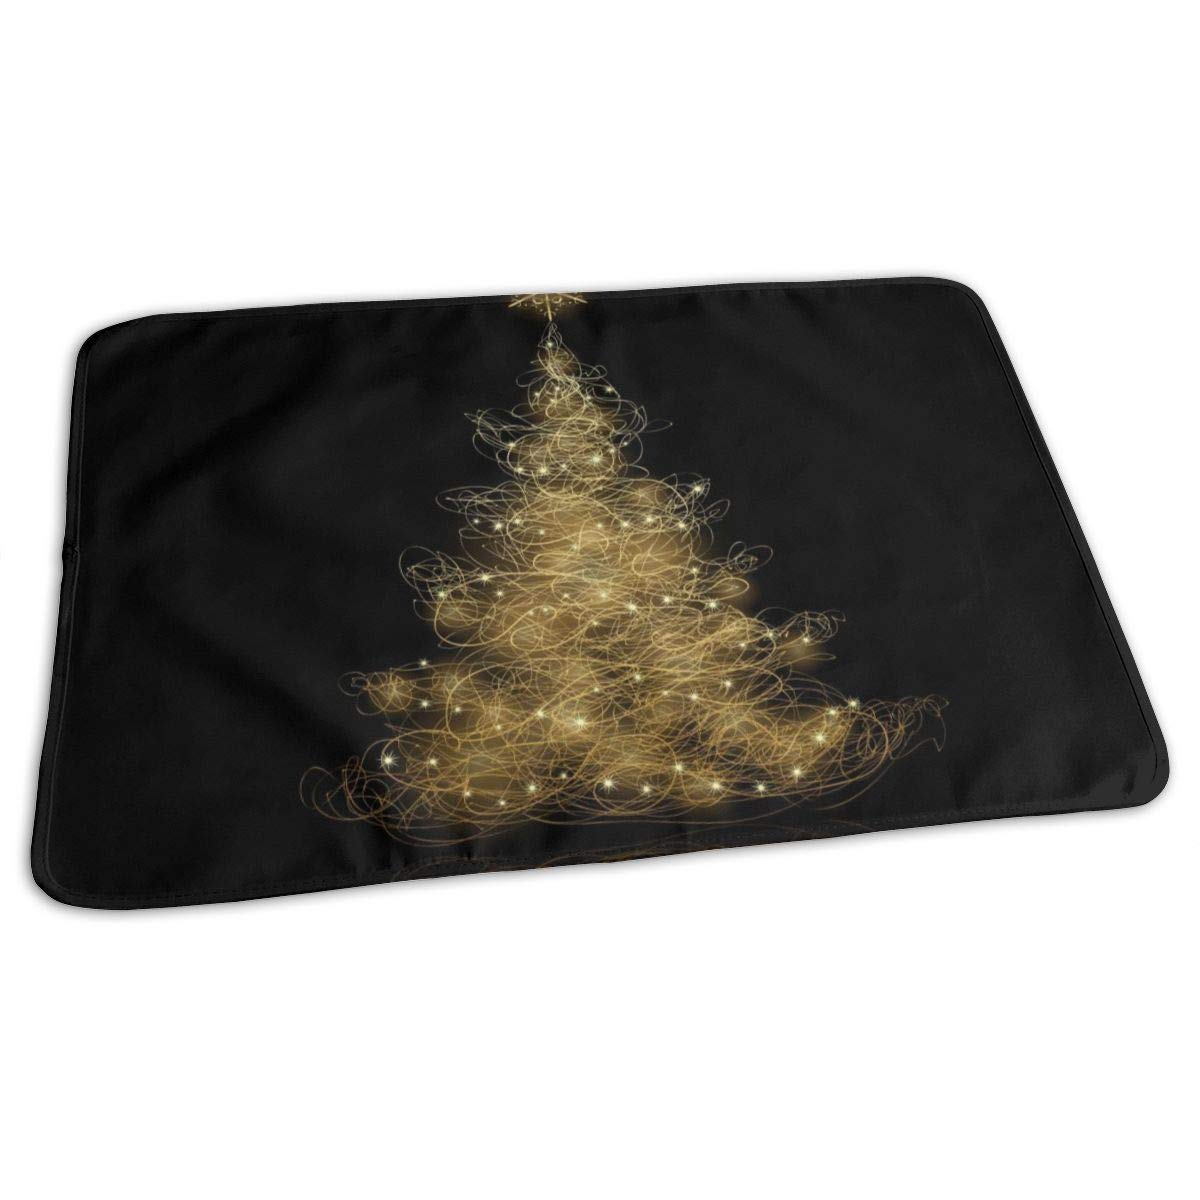 Osvbs Lovely Baby Reusable Waterproof Portable Golden Christmas Tree Changing Pad Home Travel 27.5''x19.7'' by Osvbs